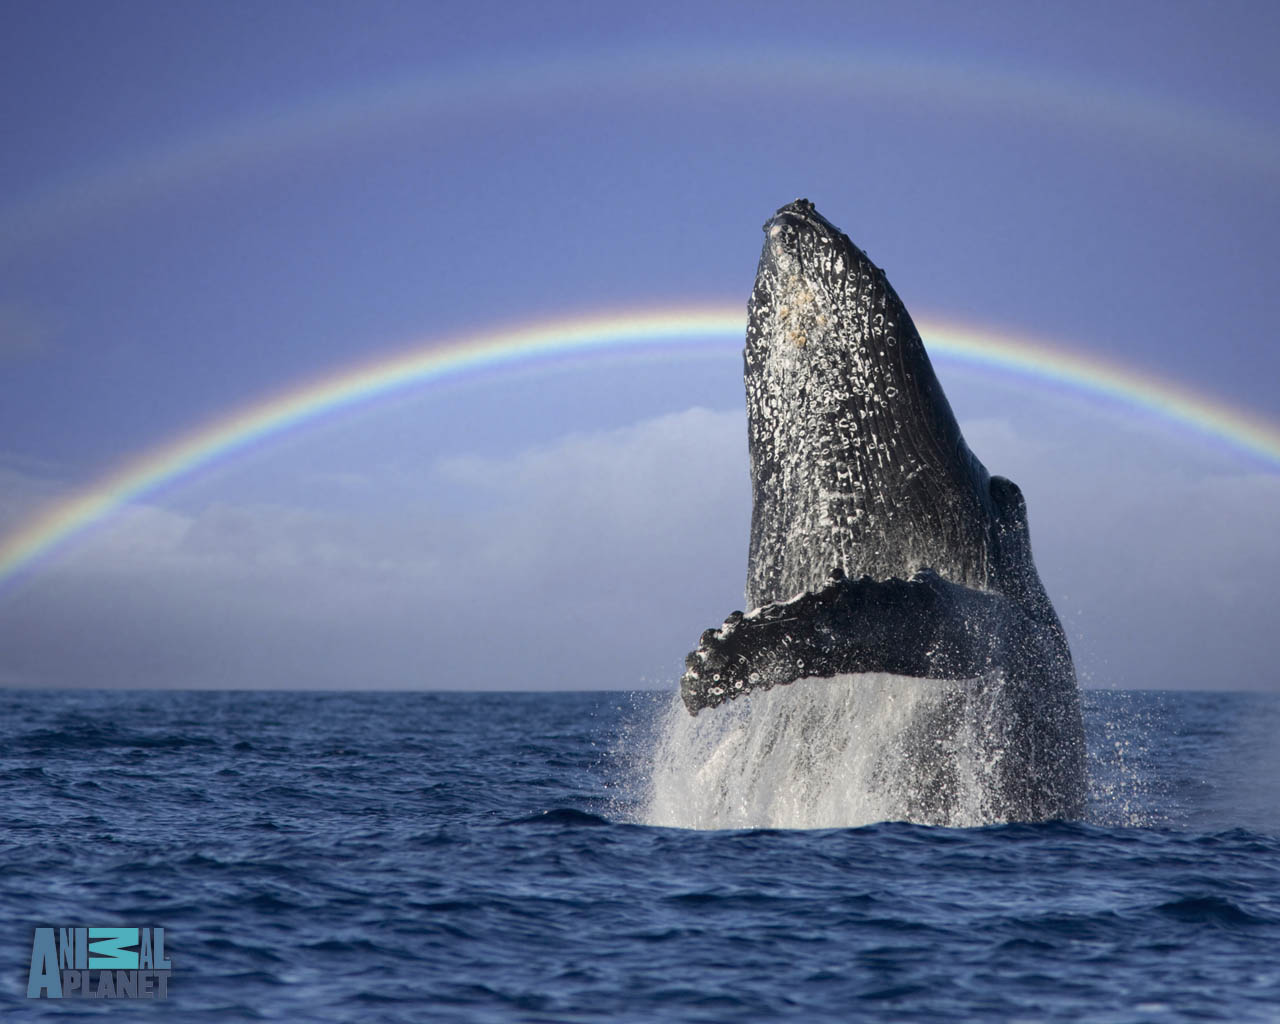 Wallpapers Humpback Whale Desktop Download Whales Humpback Whale 1280x1024